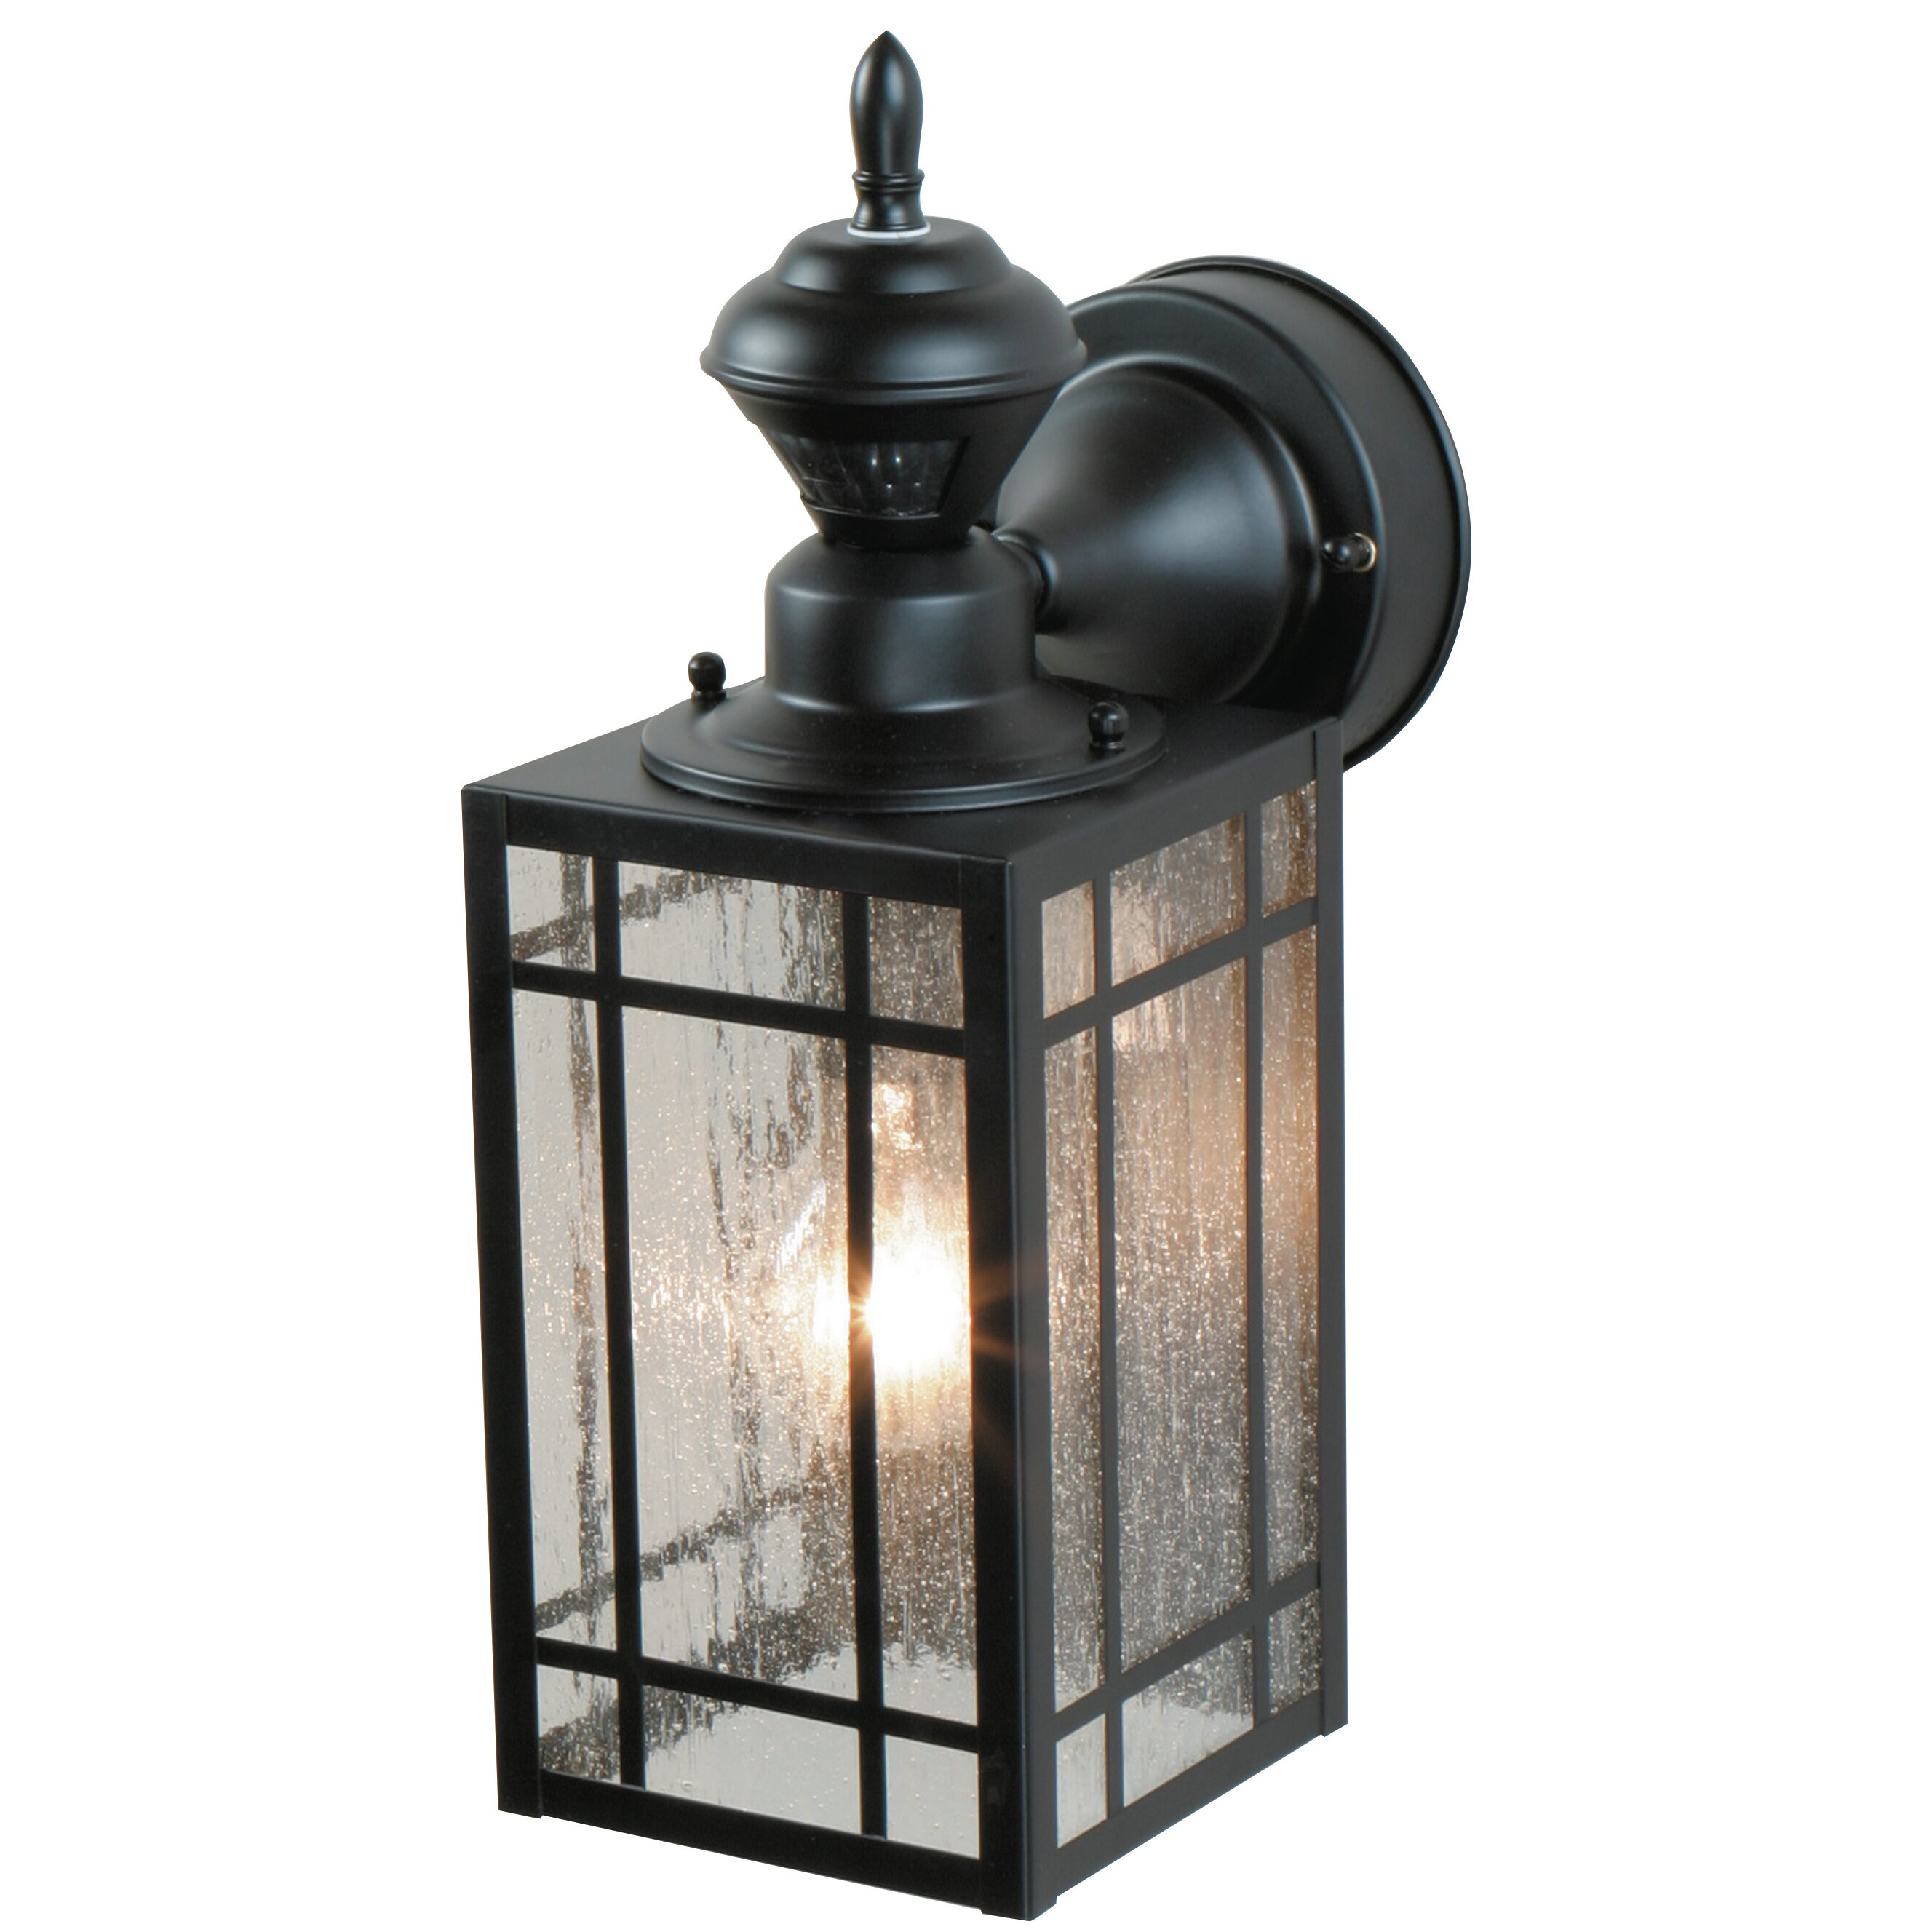 External Lantern Wall Lights : Heath-Zenith 1 Light Outdoor Wall Lantern & Reviews Wayfair